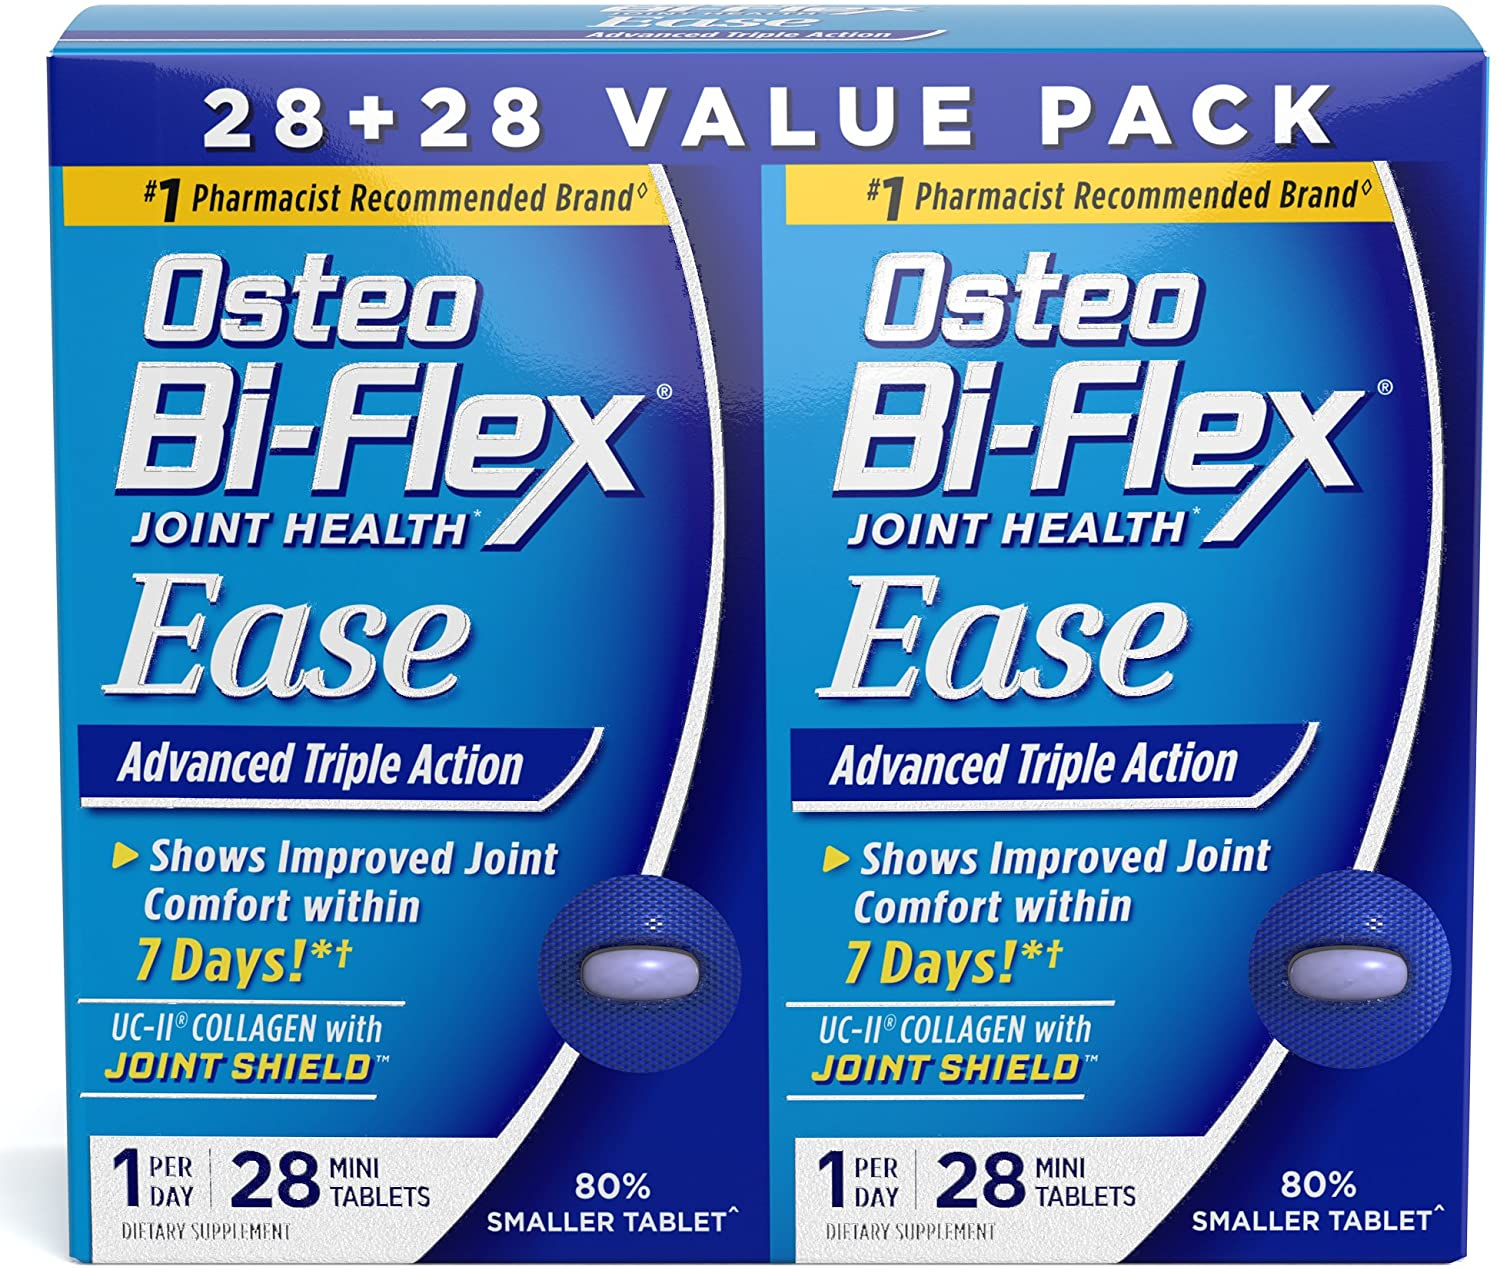 Osteo Bi-Flex One Per Day, Joint Health Ease, Advanced Triple Action, with Vitamin D for Bone and Immune Health* Variety Pack, 56 Mini Tablets